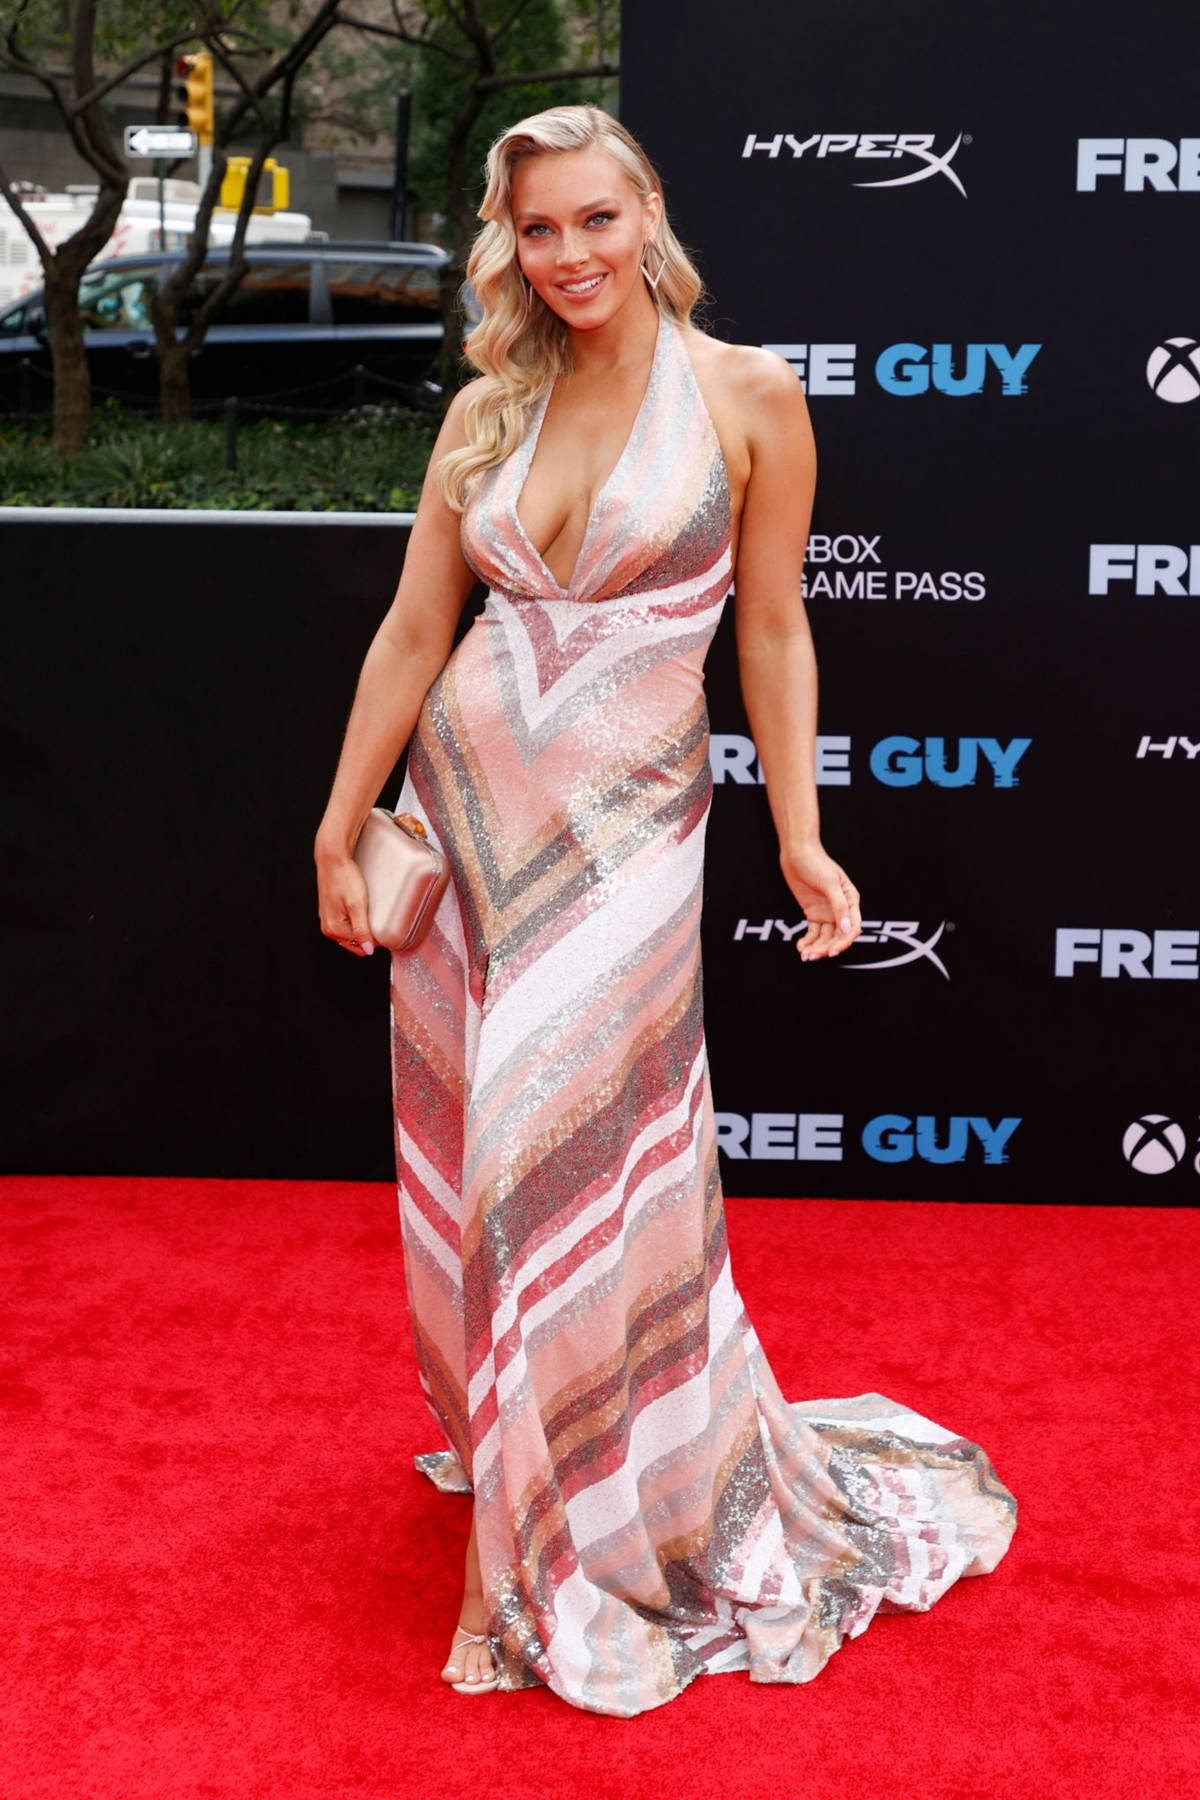 Camille Kostek attends the Premiere of 'Free Guy' at AMC Lincoln Square Theater in New York City